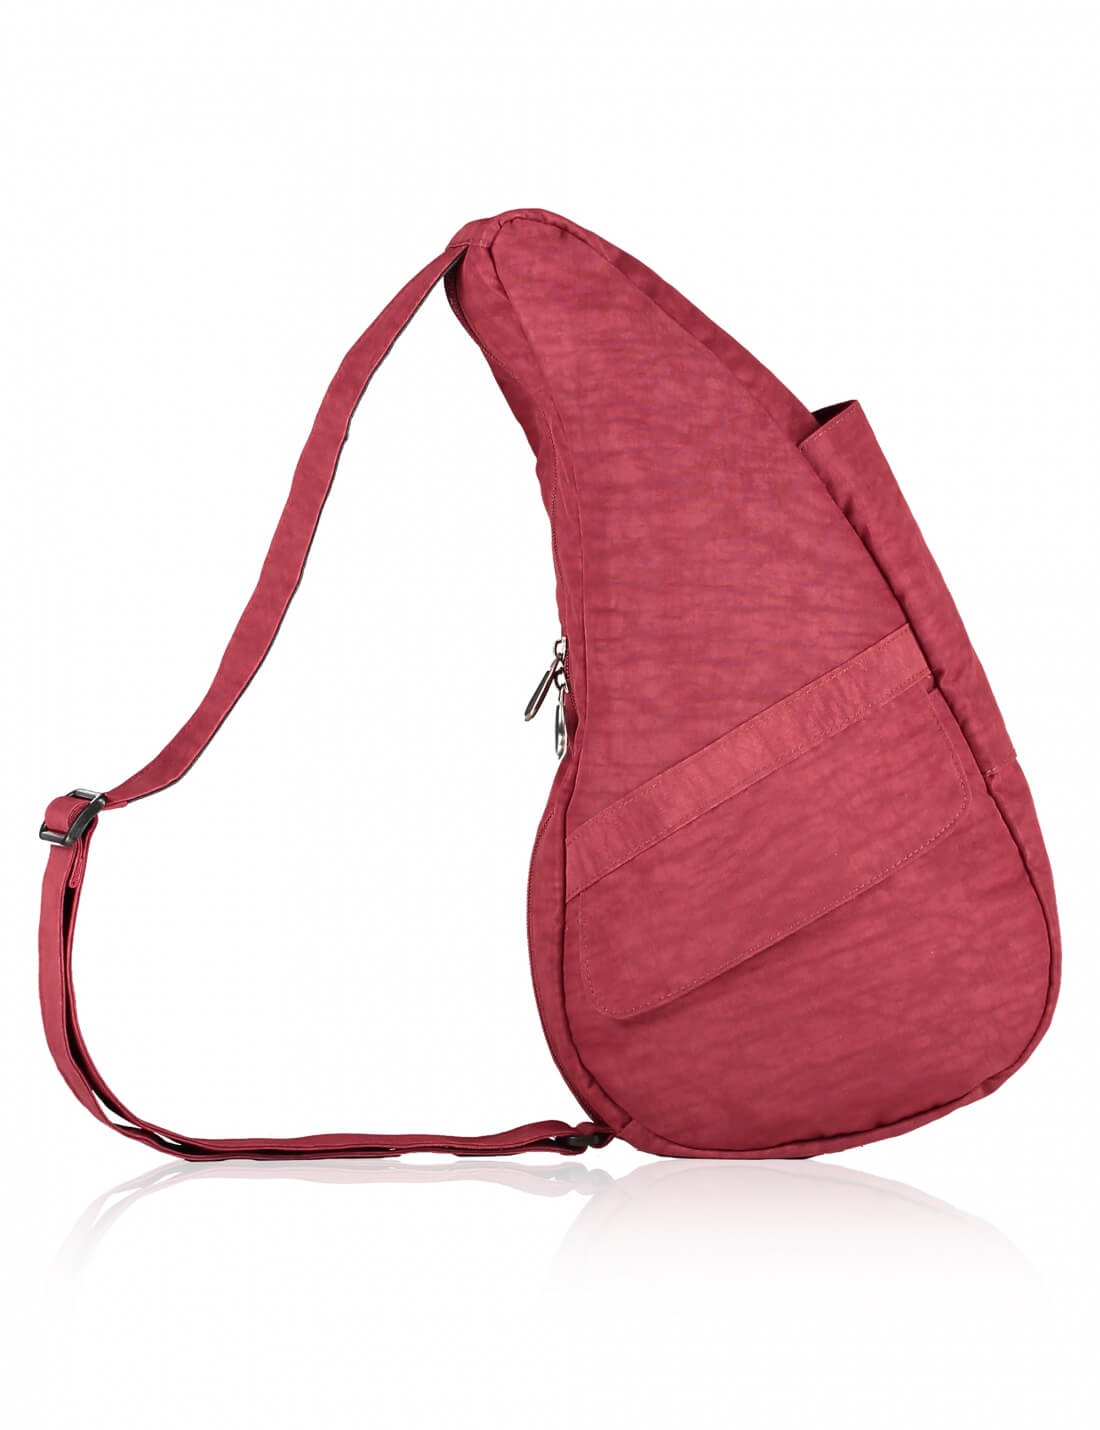 Healthy Back Bag Classic Textured S Chili-21367